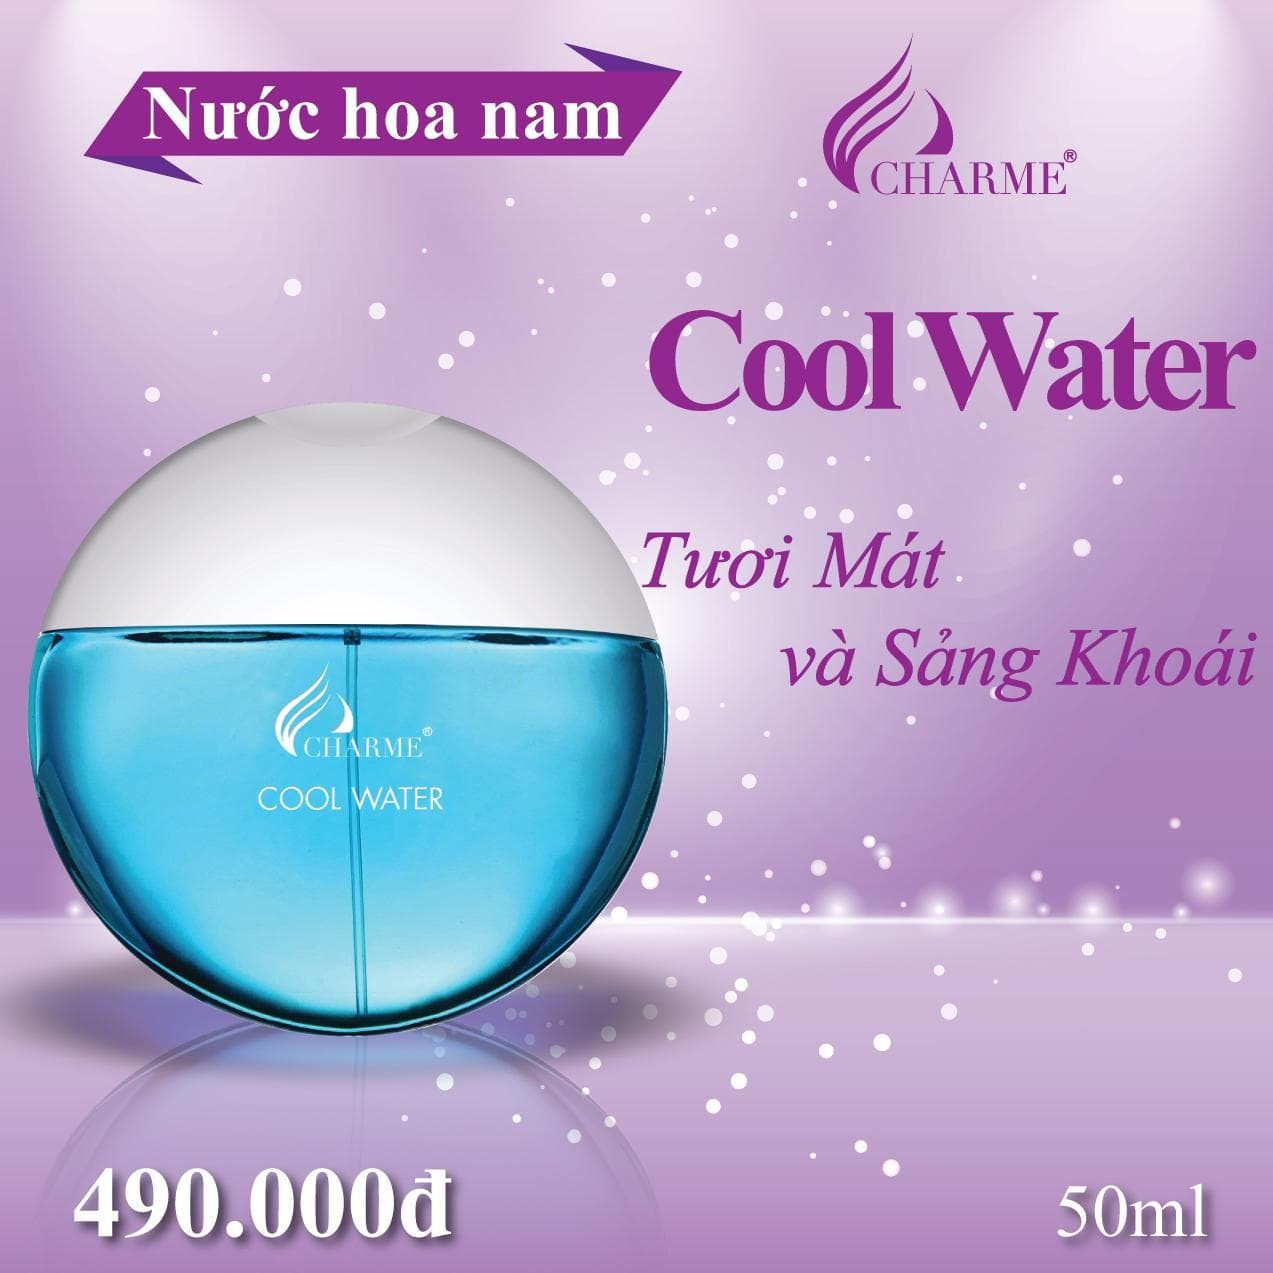 Charme Cool Water 50ml